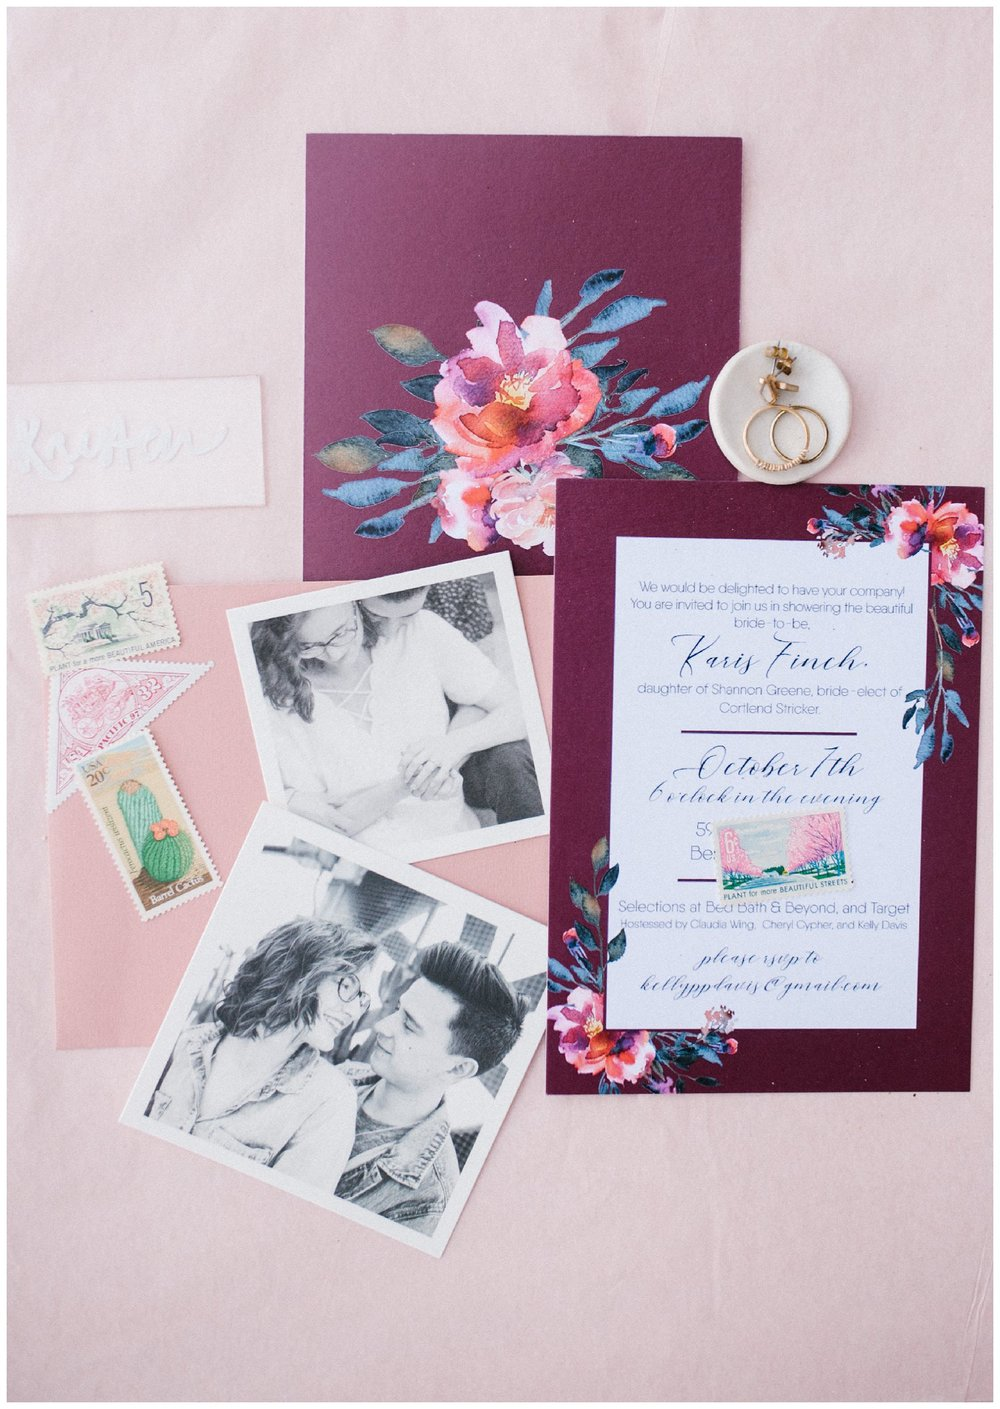 Floral bridal shower invitations_02.jpg